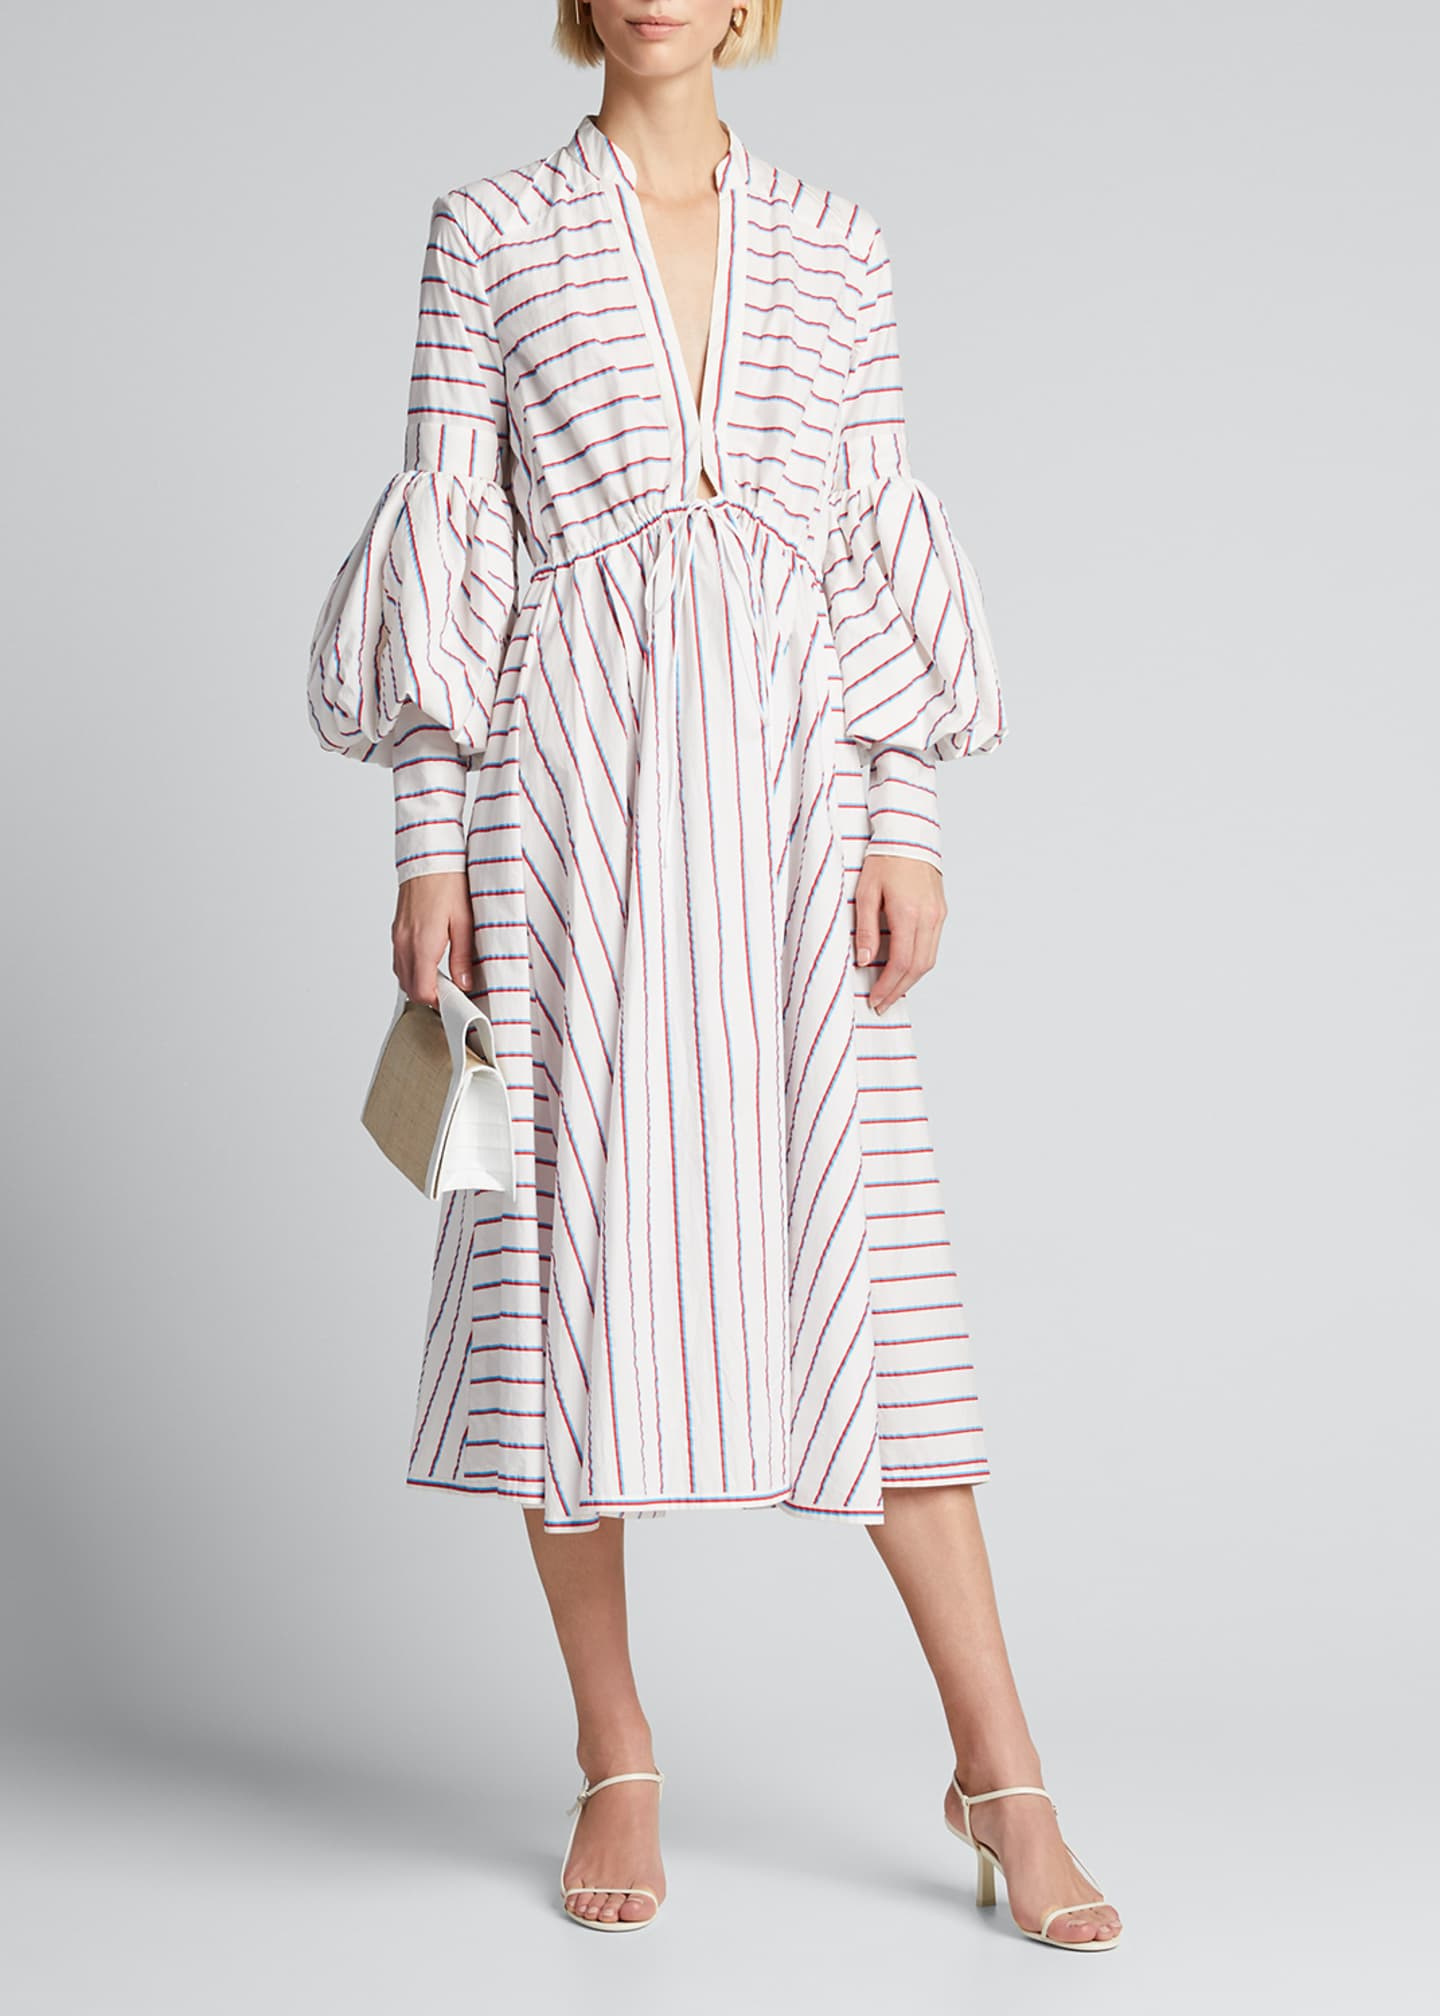 Rosie Assoulin Striped Tie-Front Midi Dress